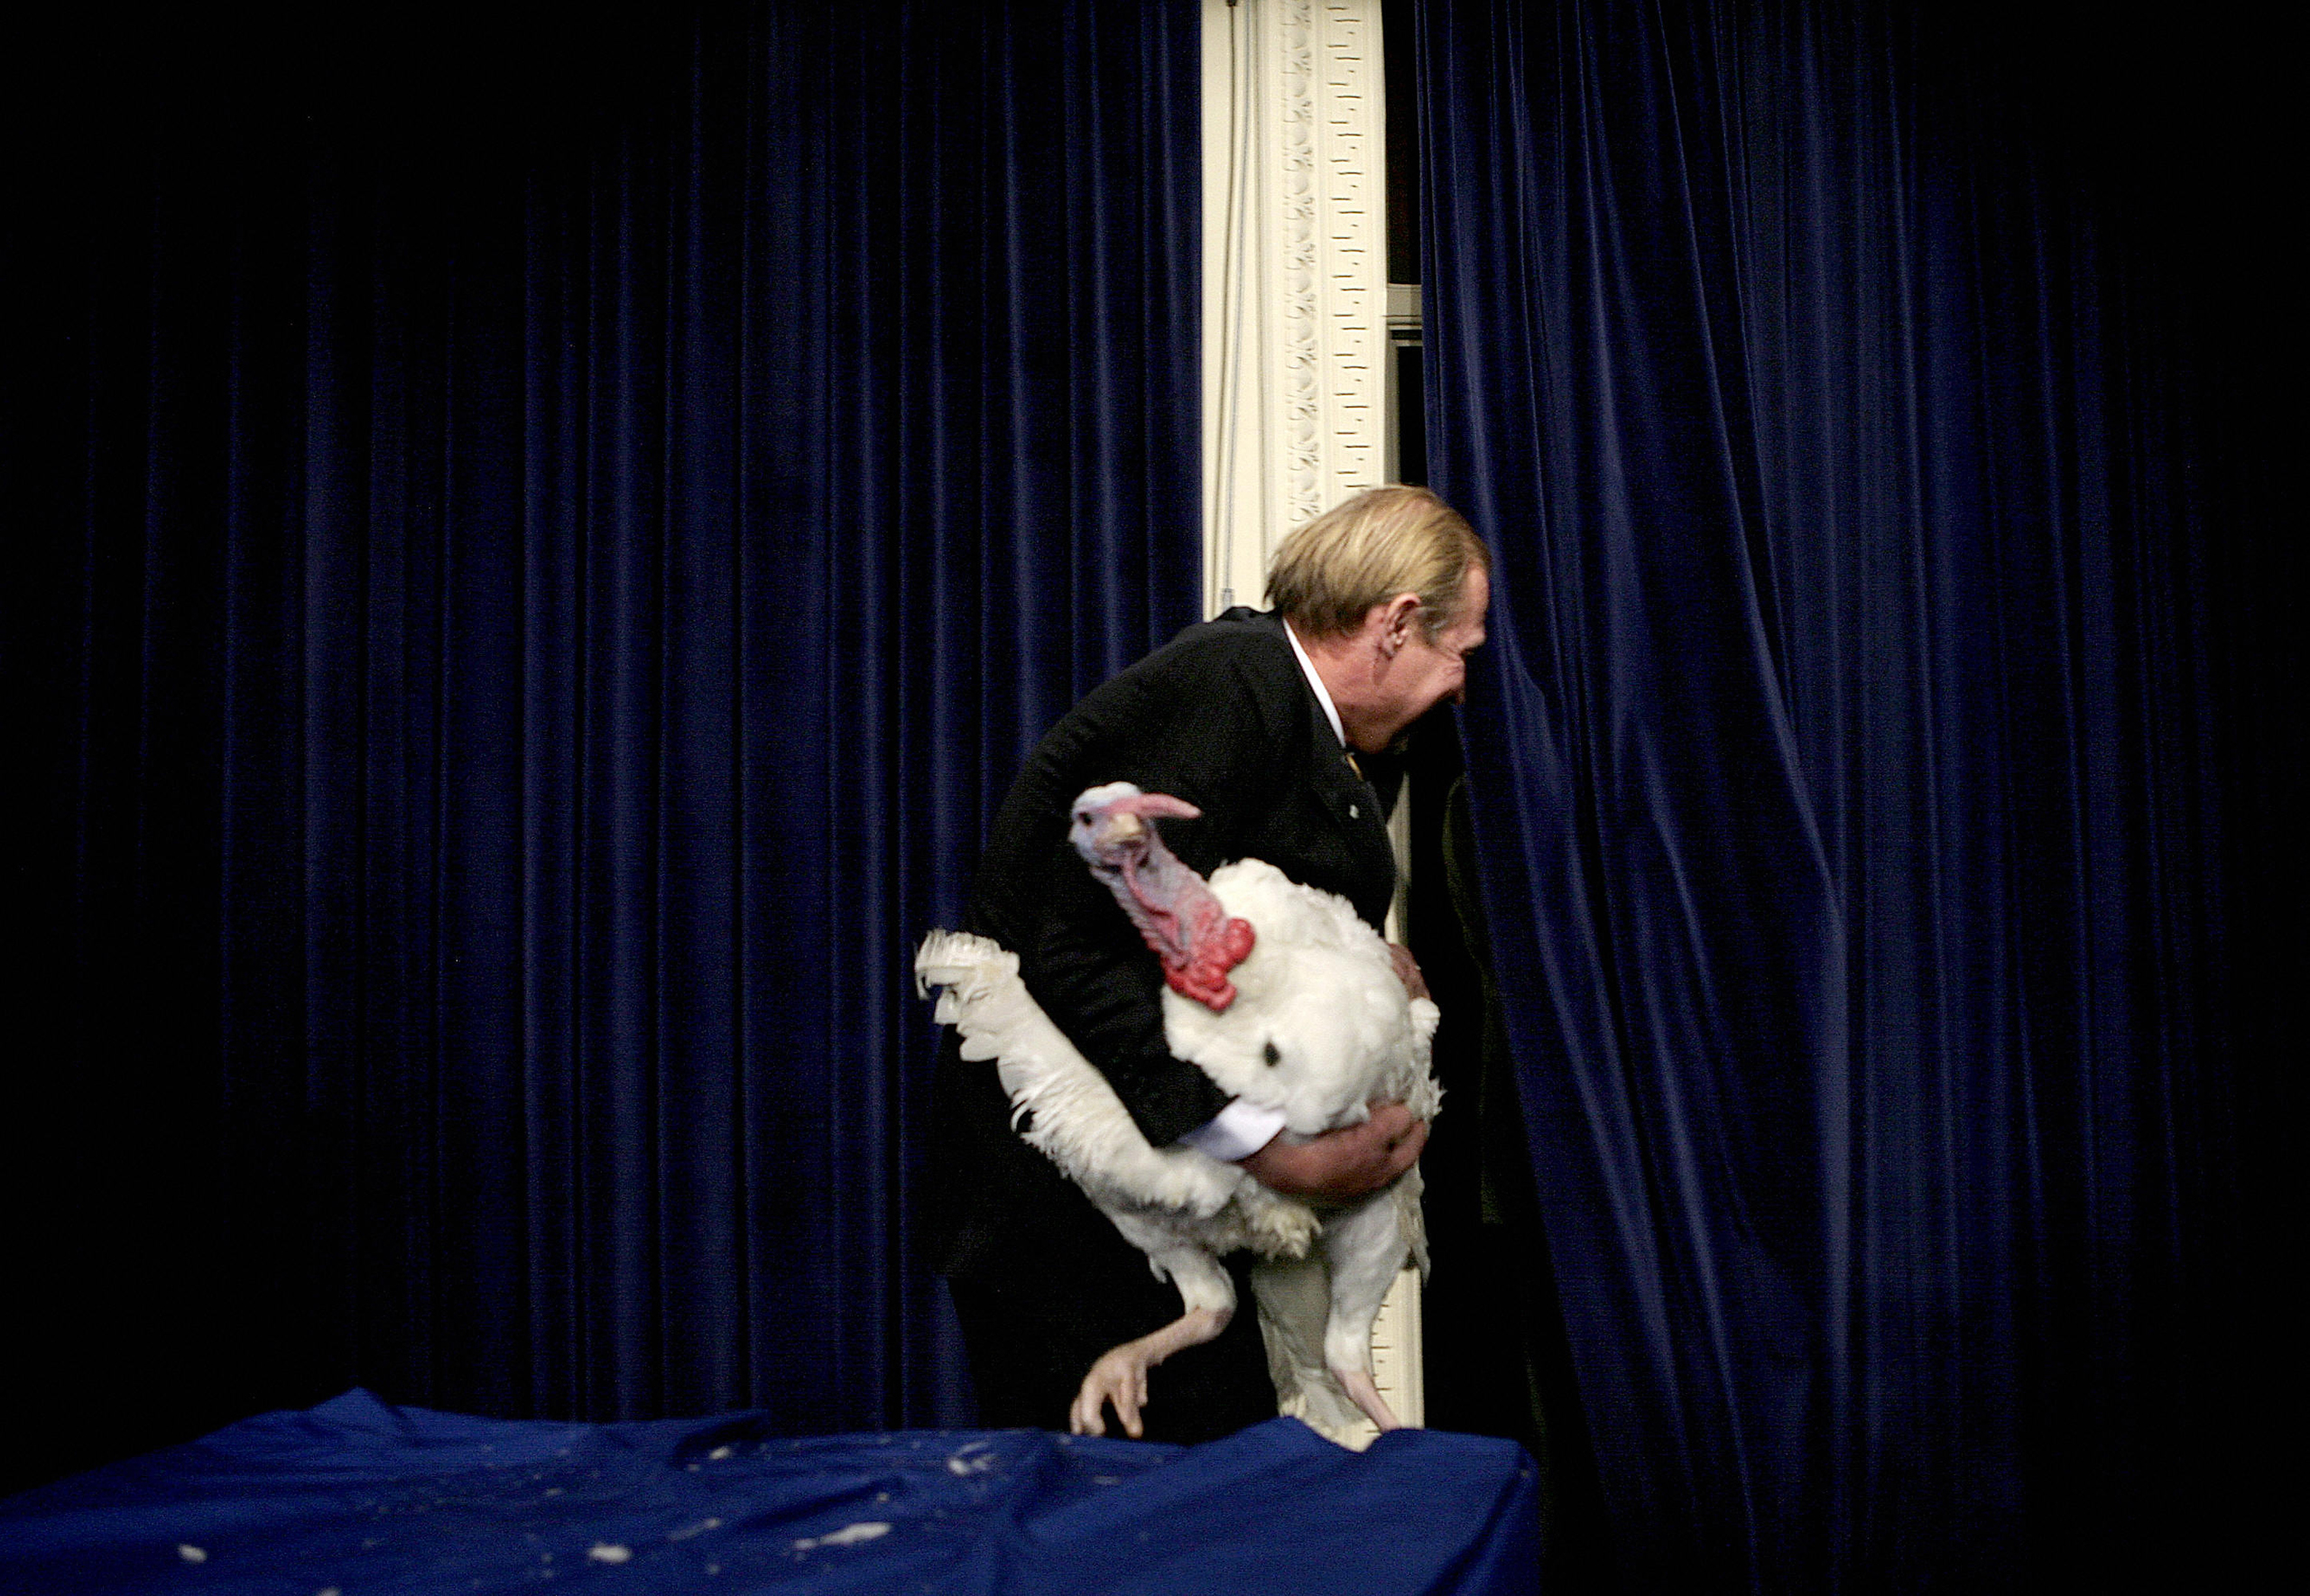 Marshmallow, the national Thanksgiving turkey, is carried away by James Trites, of Minnesota, who raised Marshmallow, after President George W.  Bush pardoned him during an event in the White House Complex Nov. 22, 2005 in Washington, DC.